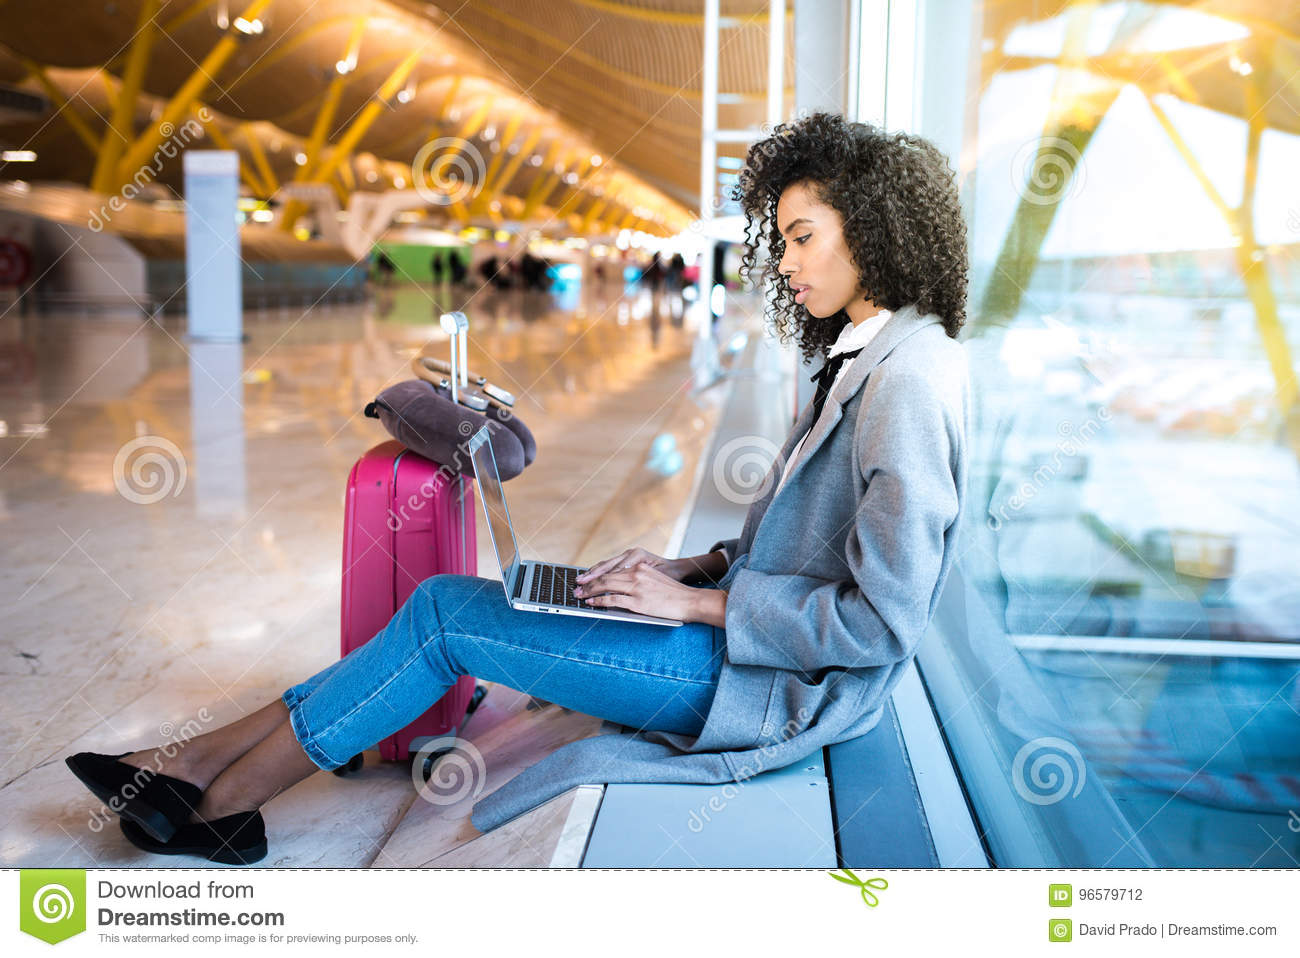 43 388 Black Woman Laptop Photos Free Royalty Free Stock Photos From Dreamstime